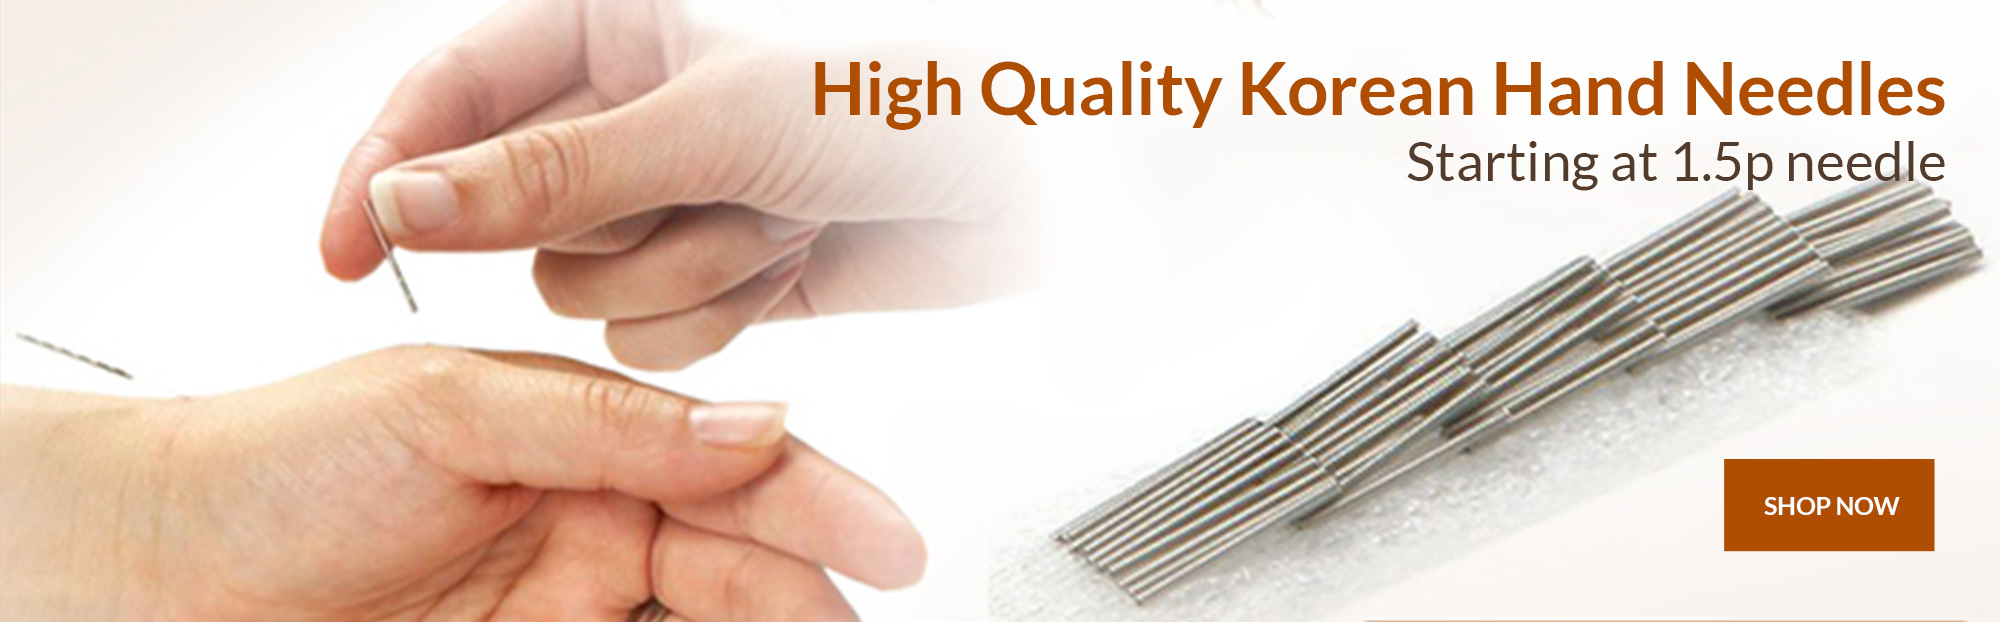 High Quality Korean Hand Needles